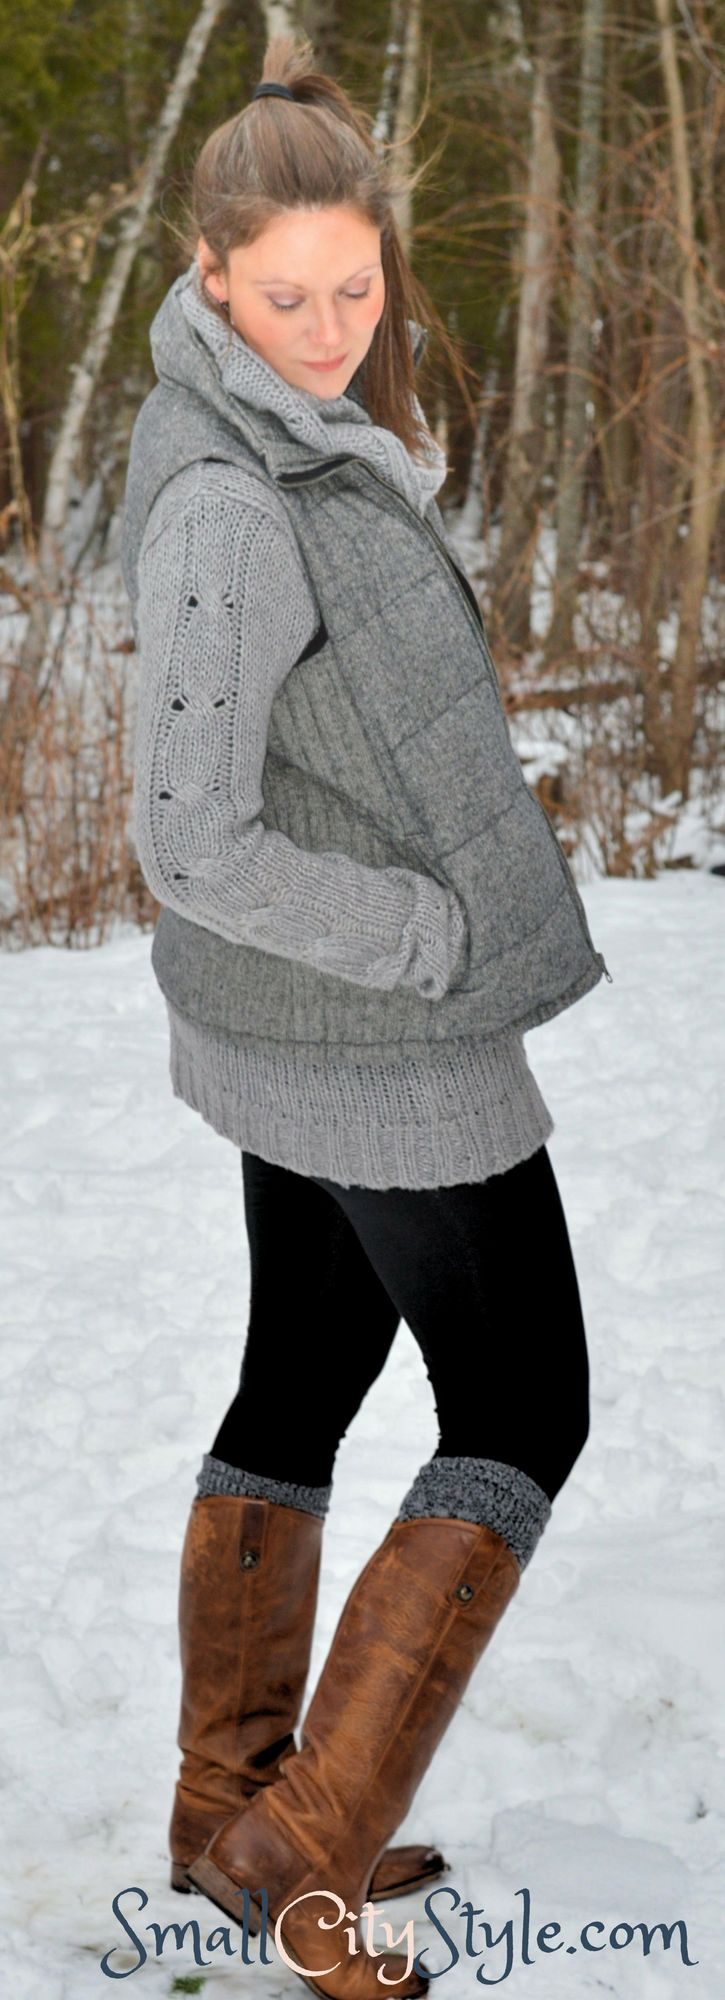 Women's winter outfit, over sized sweater and leggings, herringbone vest, cognac riding boots